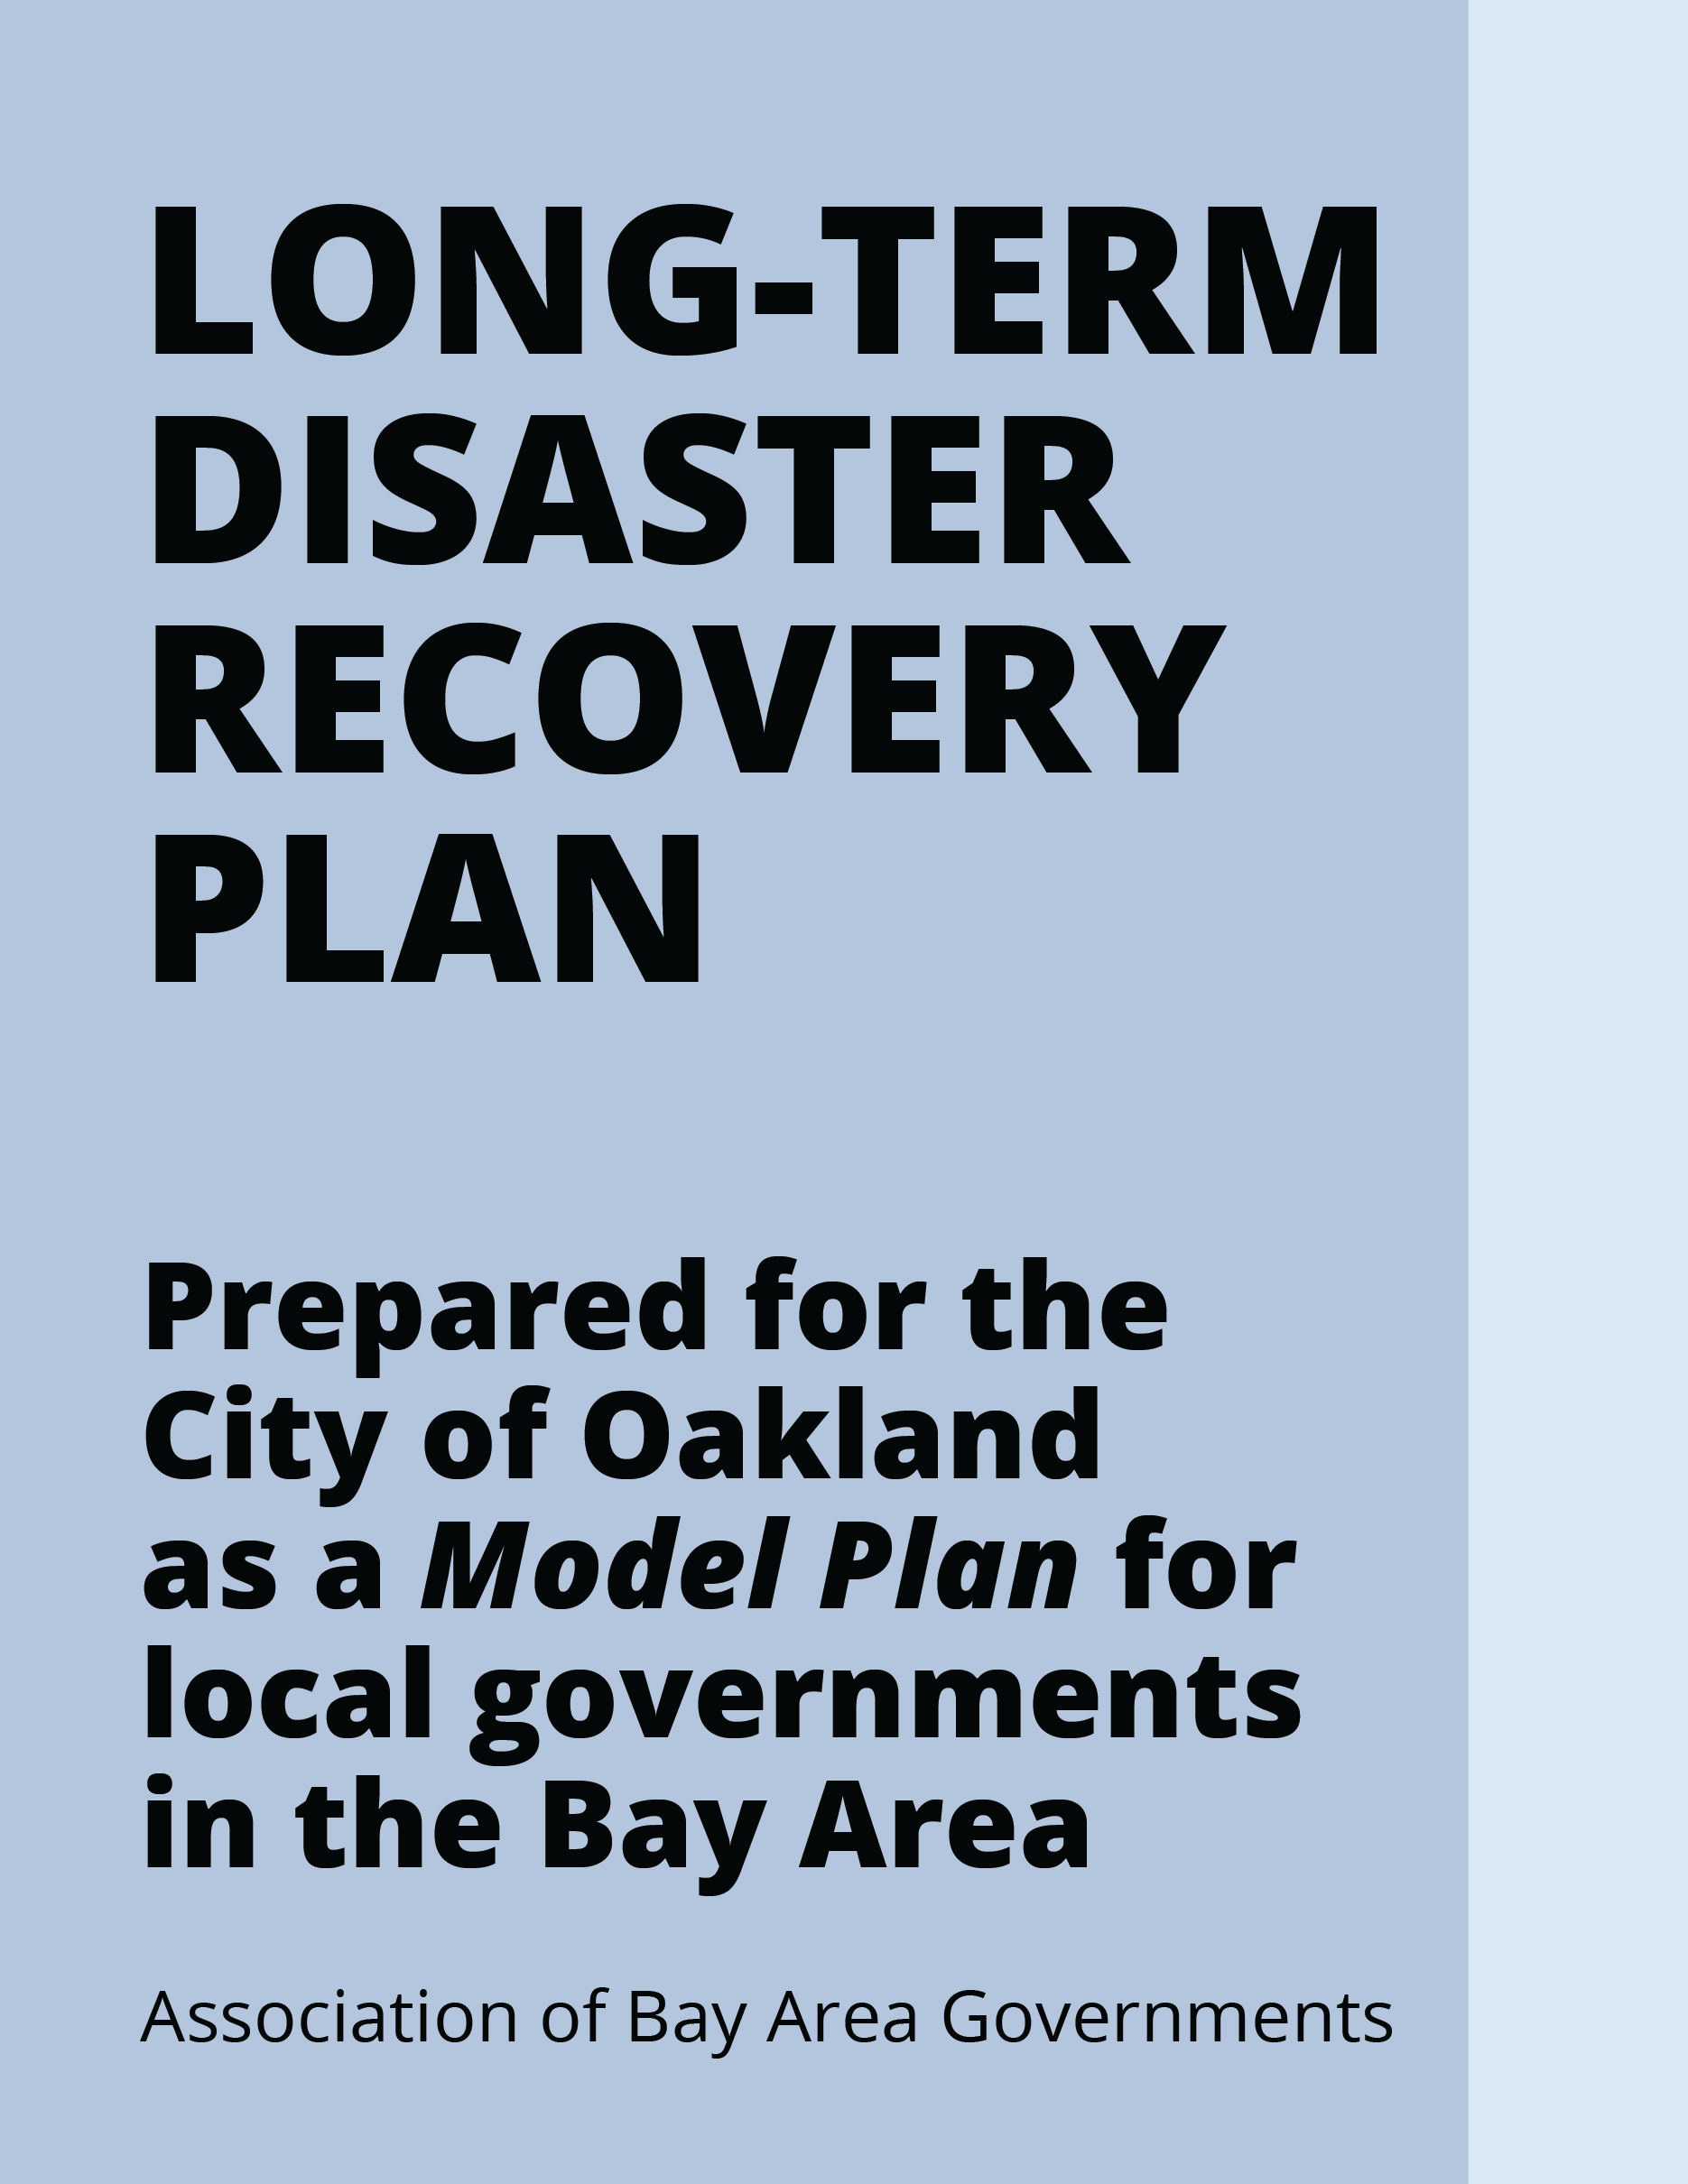 Oakland Long-Term Disaster Recovery Plan